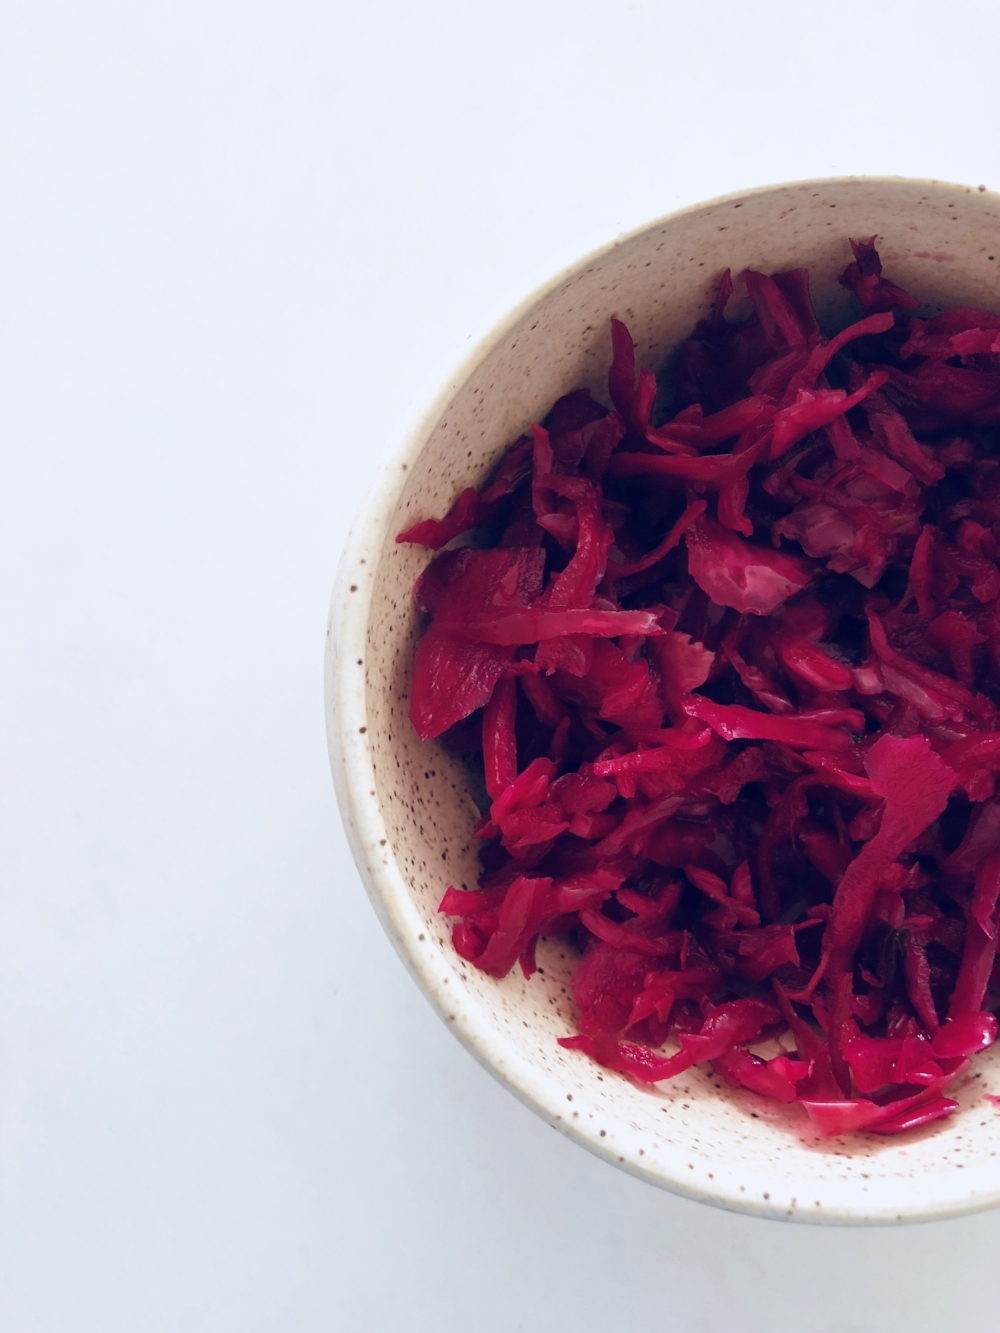 Sauerkraut is one of the most probiotic-rich foods you can find.